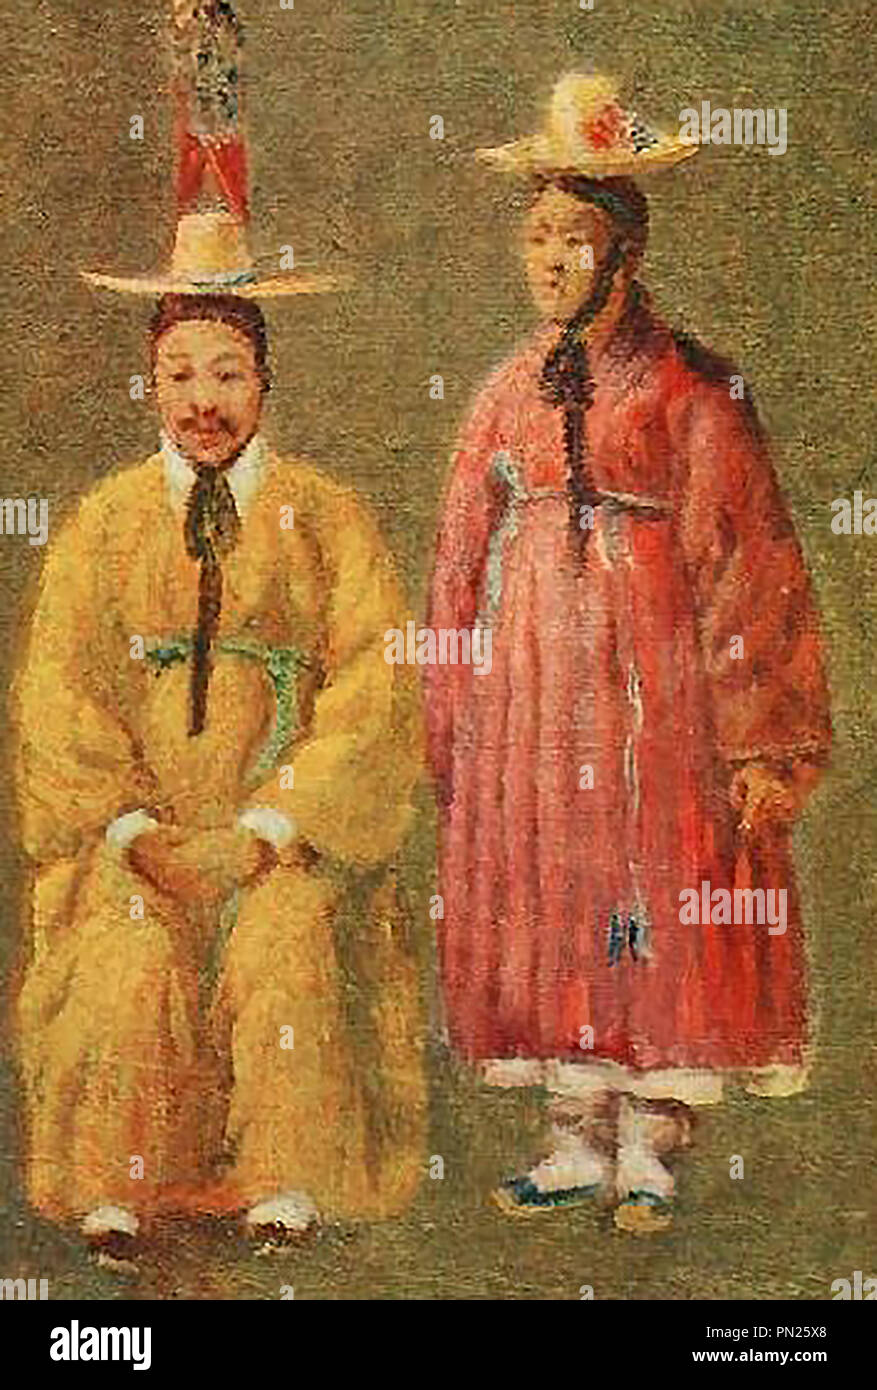 KOREA - A 1910 colour portraits of two of the Emeror's servants in national dress Stock Photo